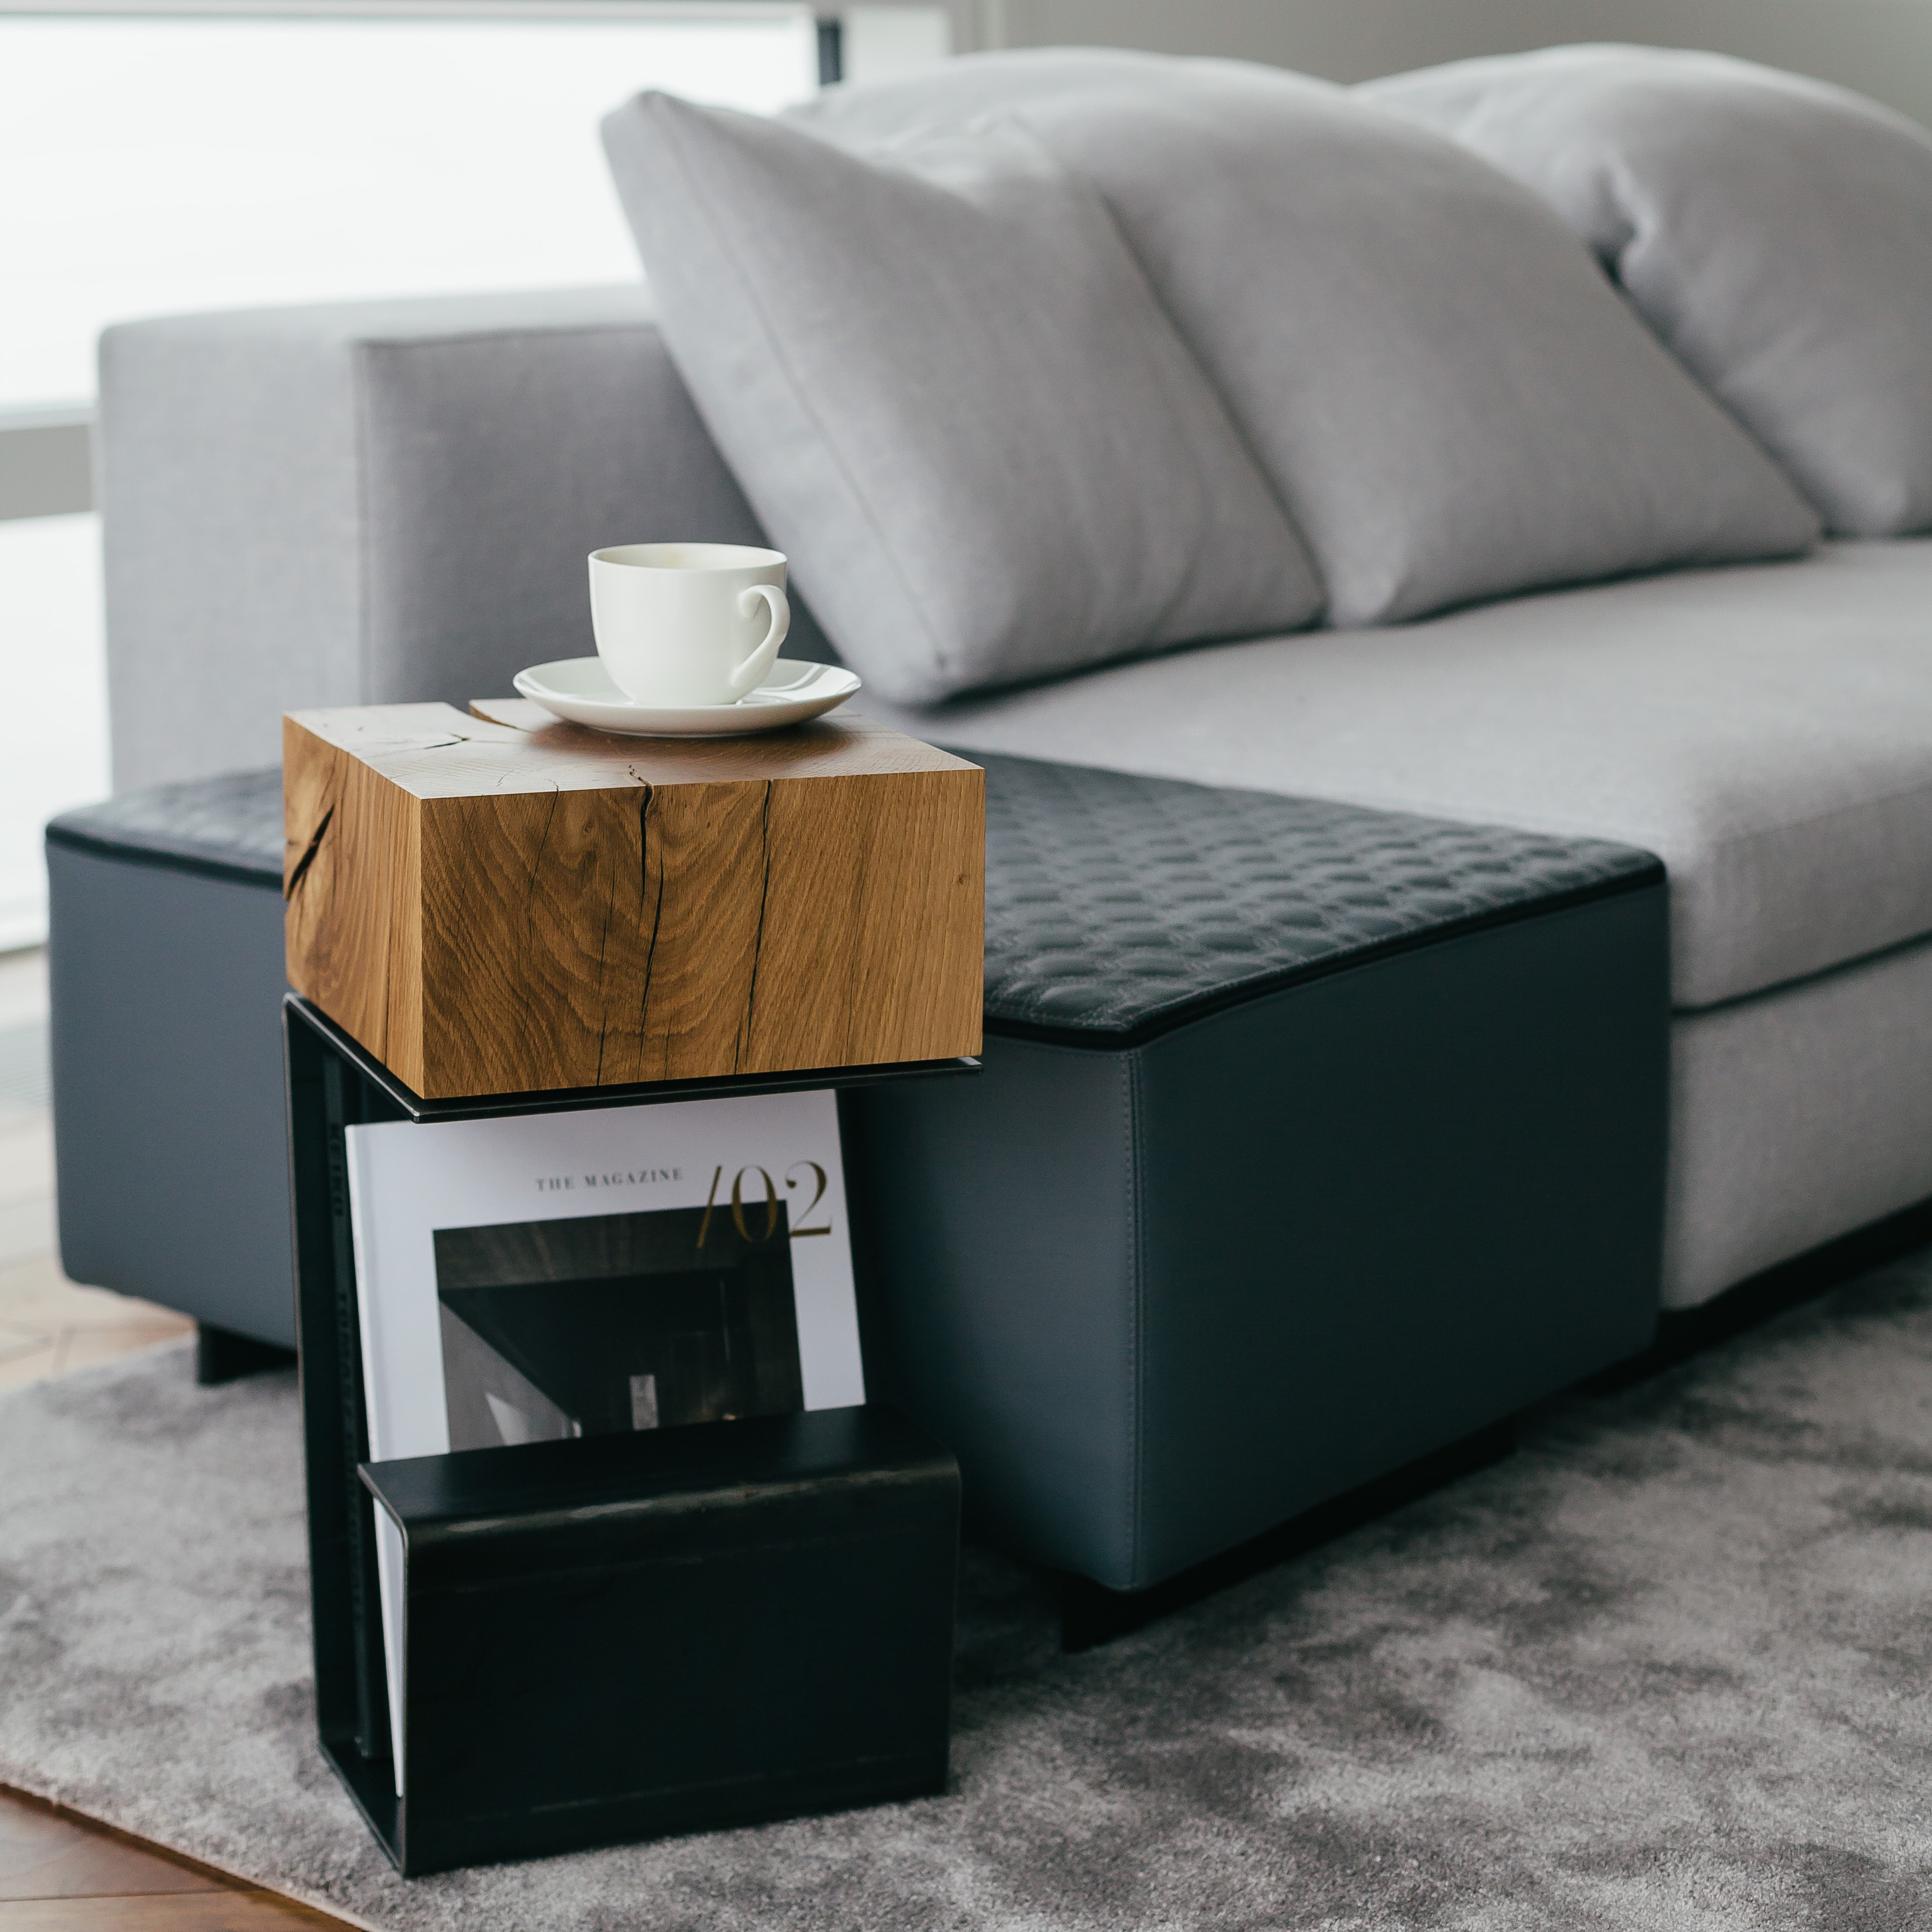 THE LINE Side Table - Luxury furniture design!